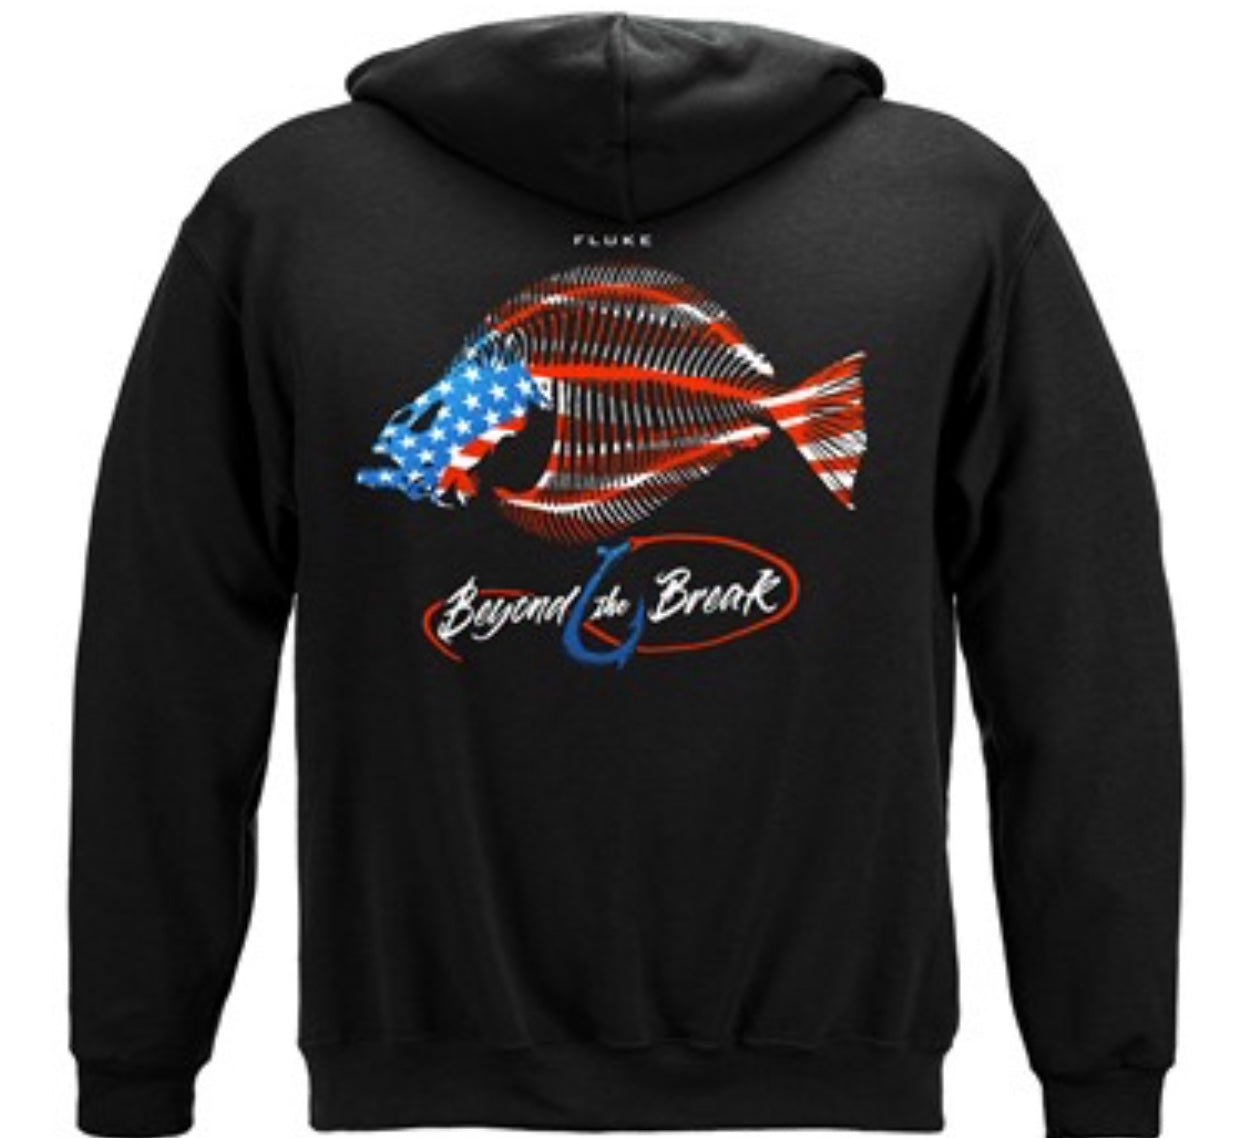 Patriotic Fluke Sweatshirt - The Wall Kids, Inc.